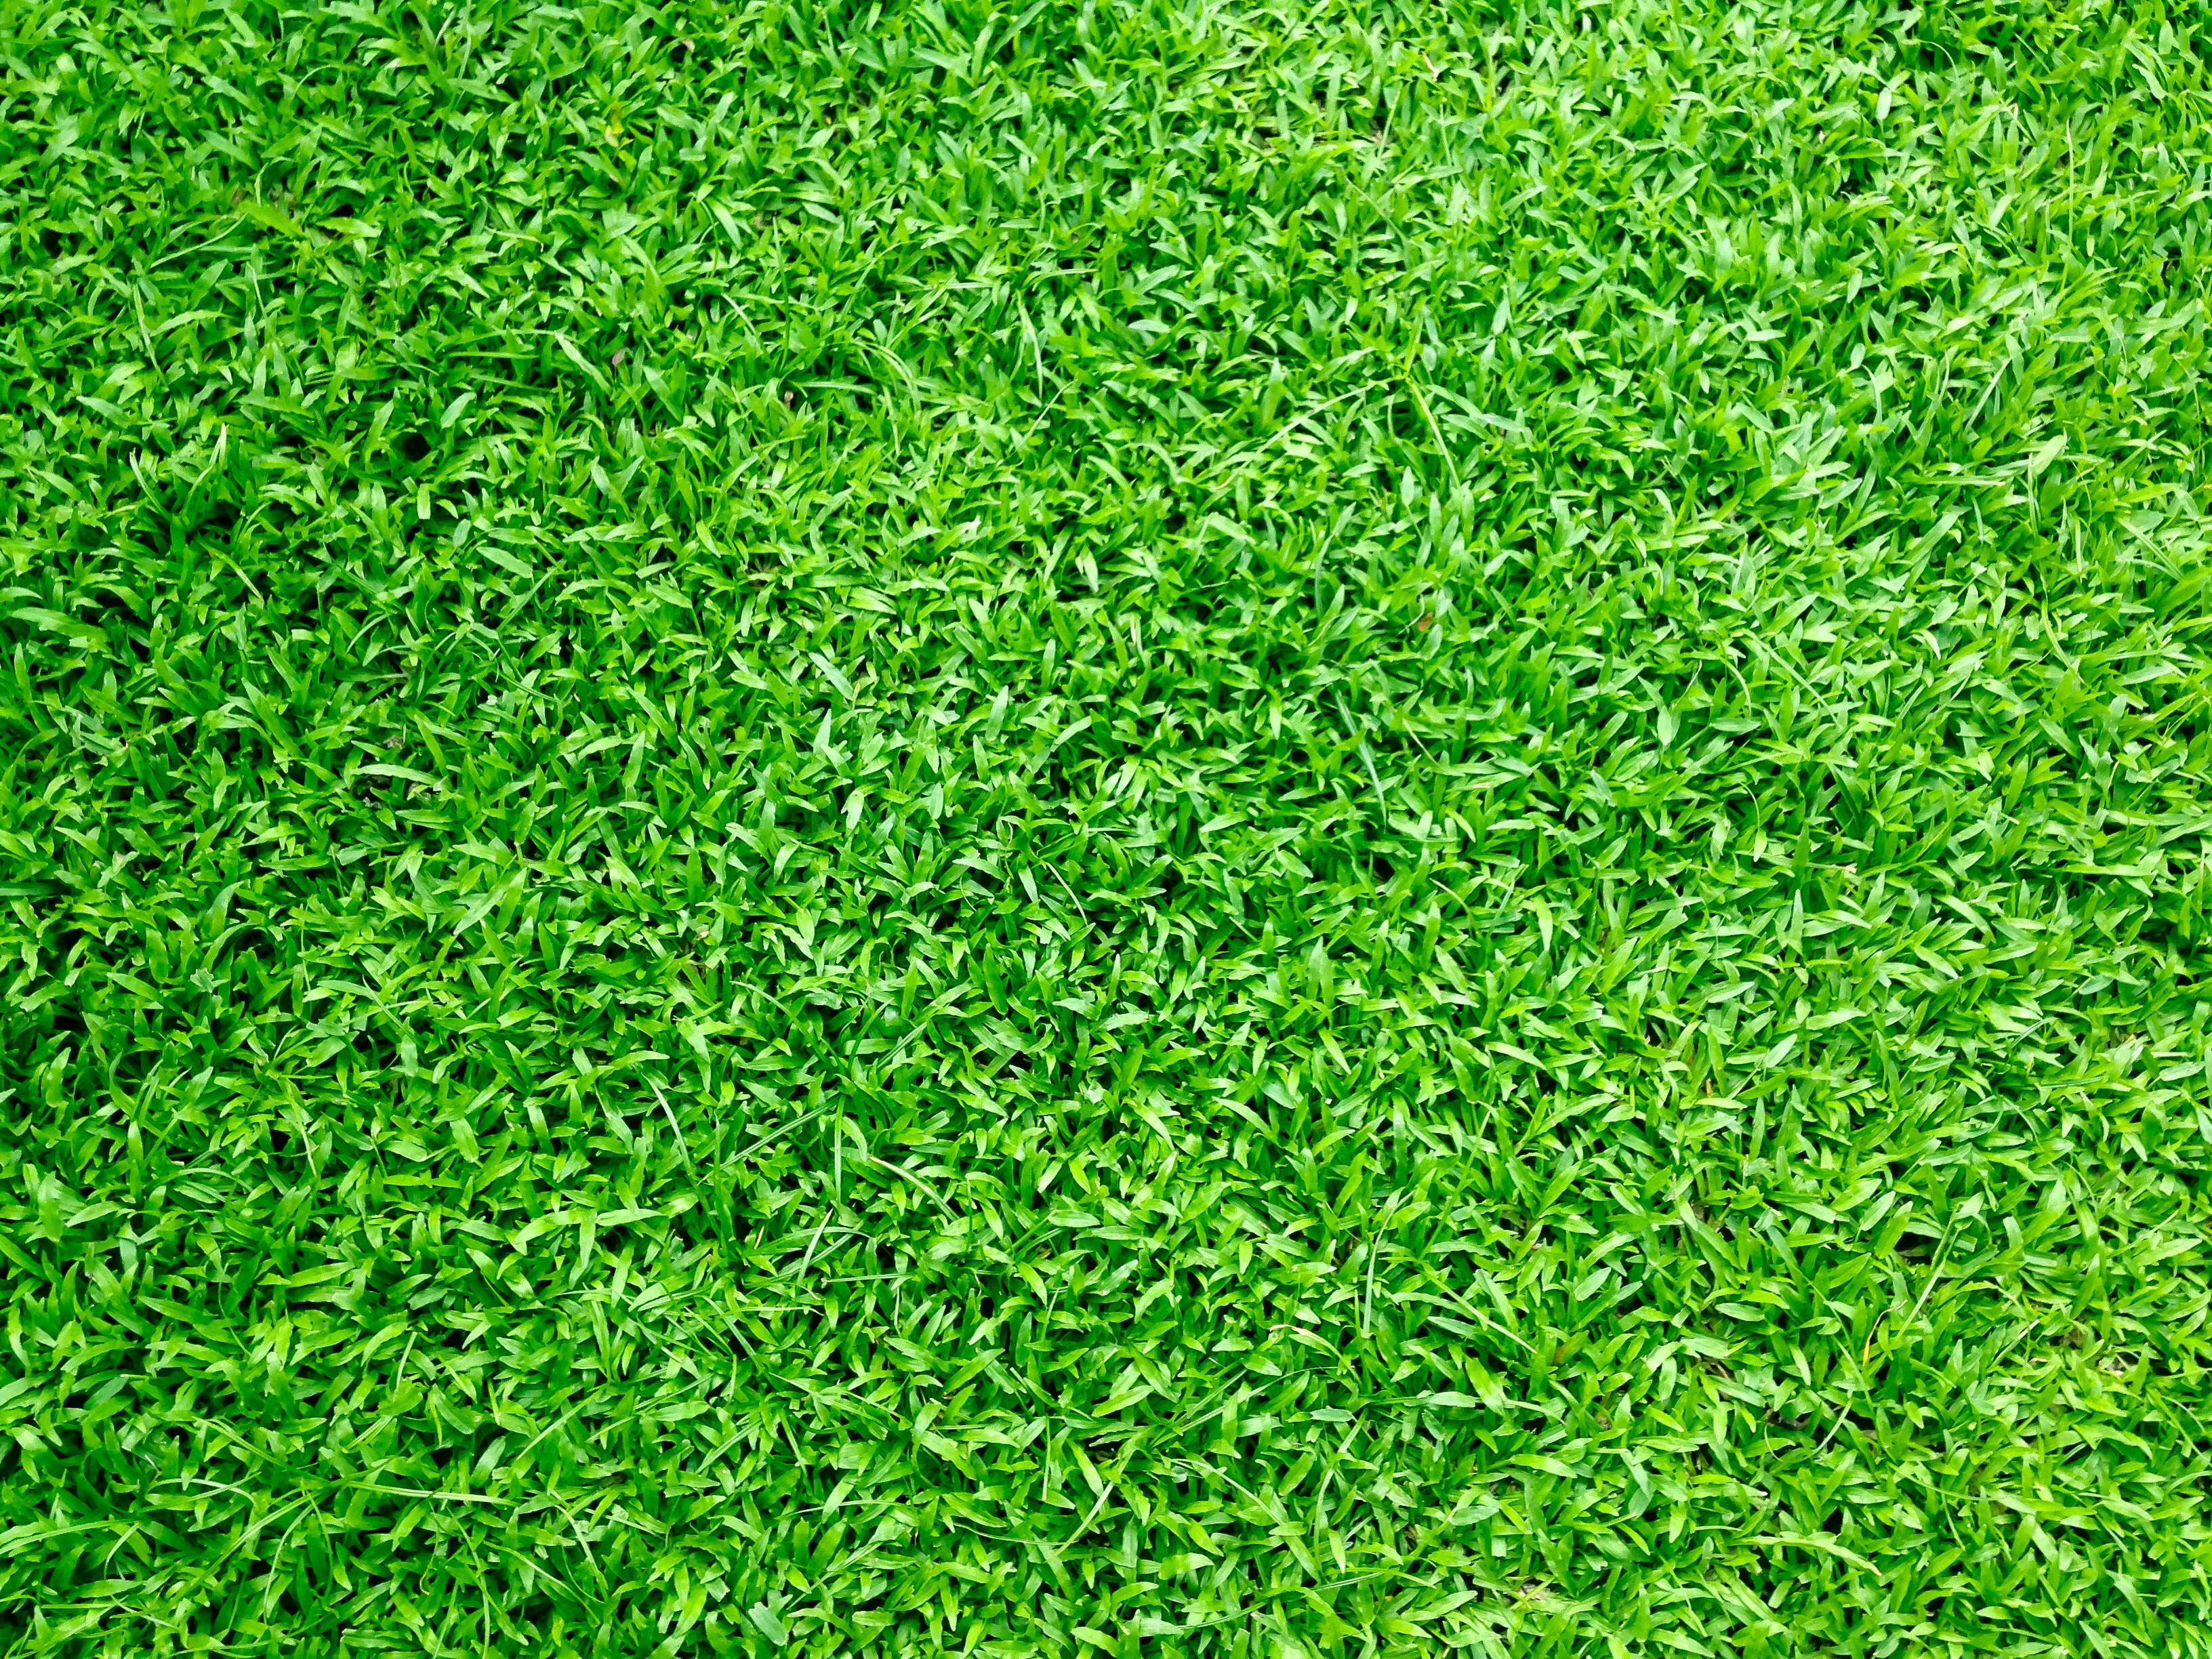 grass background hd animated 1000 beautiful grass background photos pexels free stock